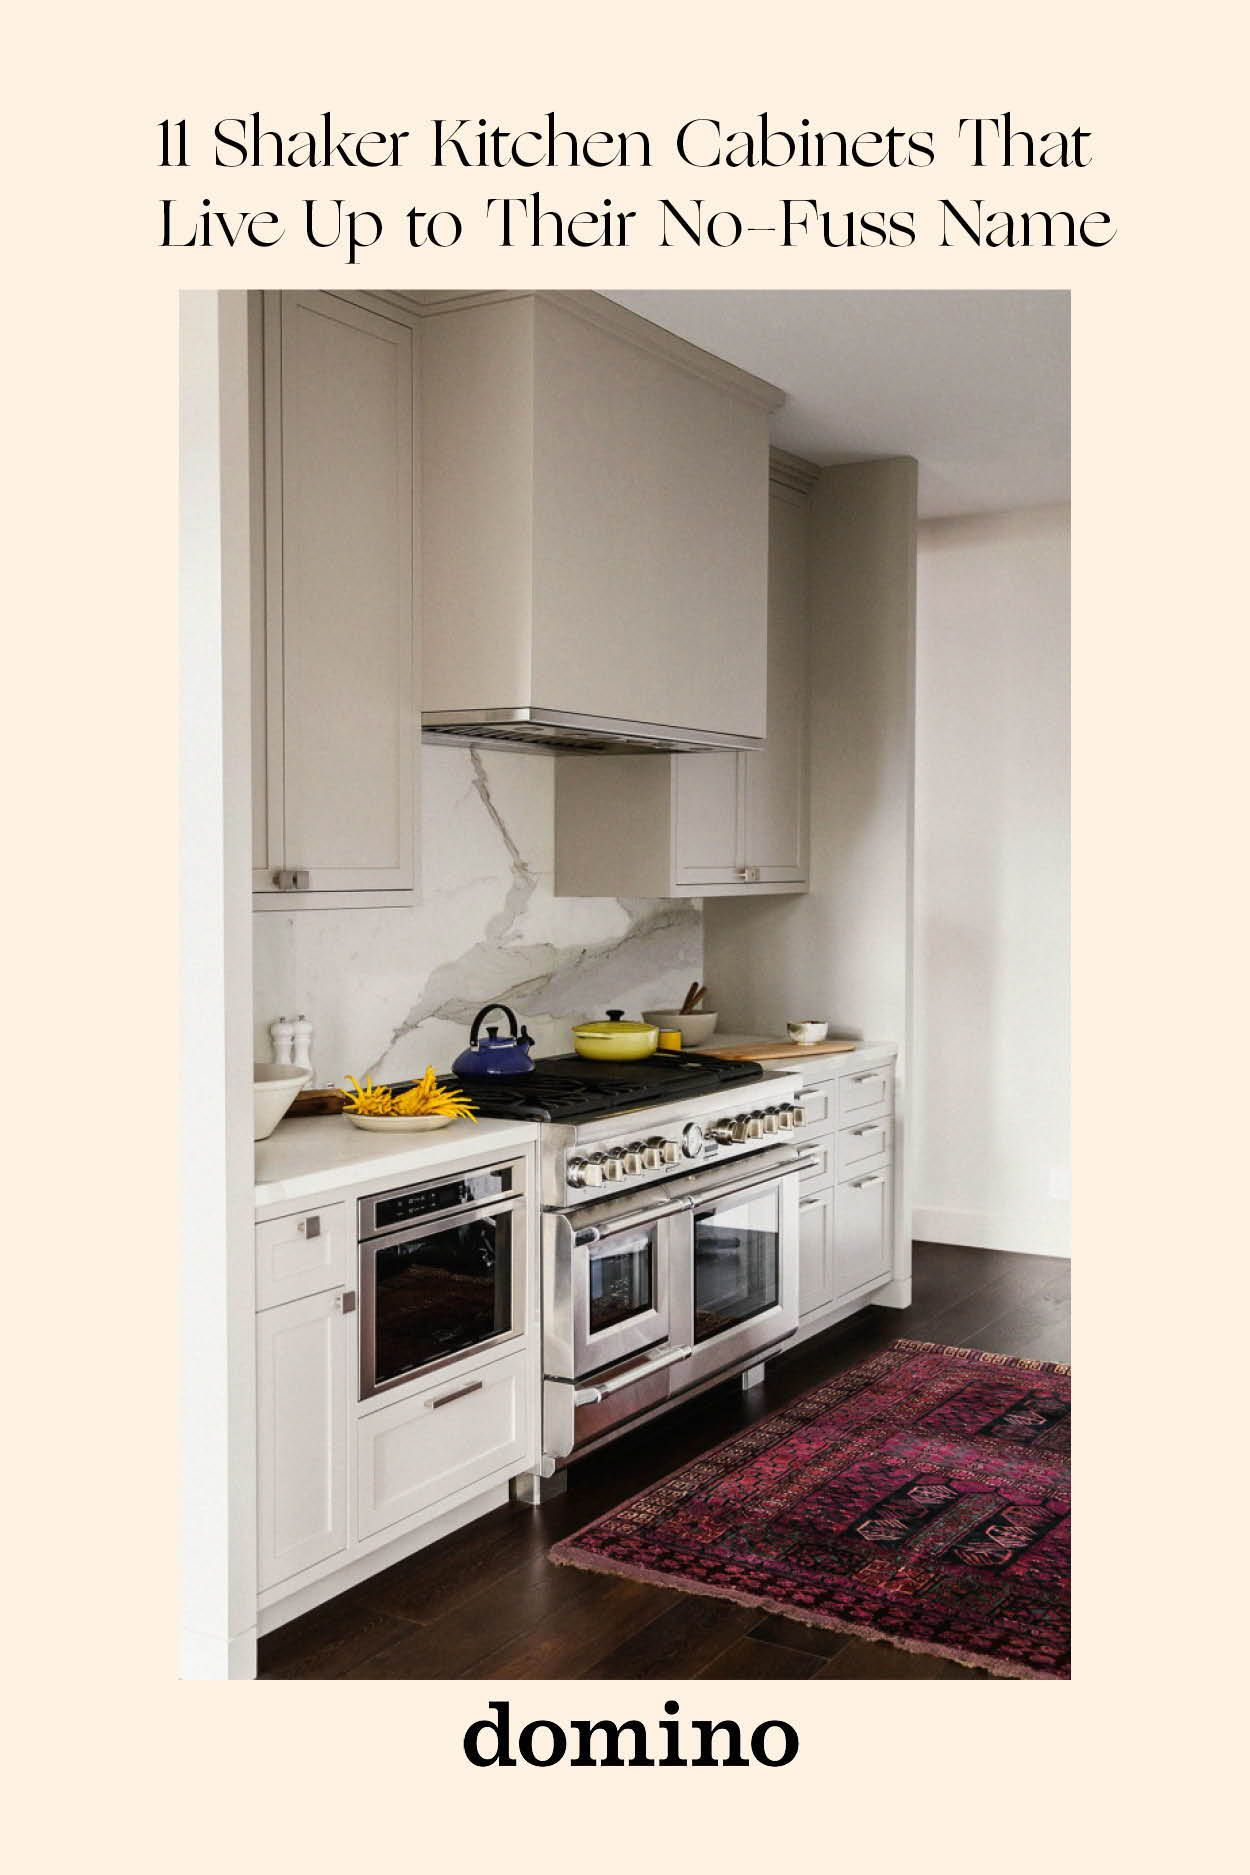 11 Shaker Kitchen Cabinet Ideas That Put A Twist On The Classic Style In 2020 Kitchen Cabinet Styles Shaker Style Kitchen Cabinets Shaker Kitchen